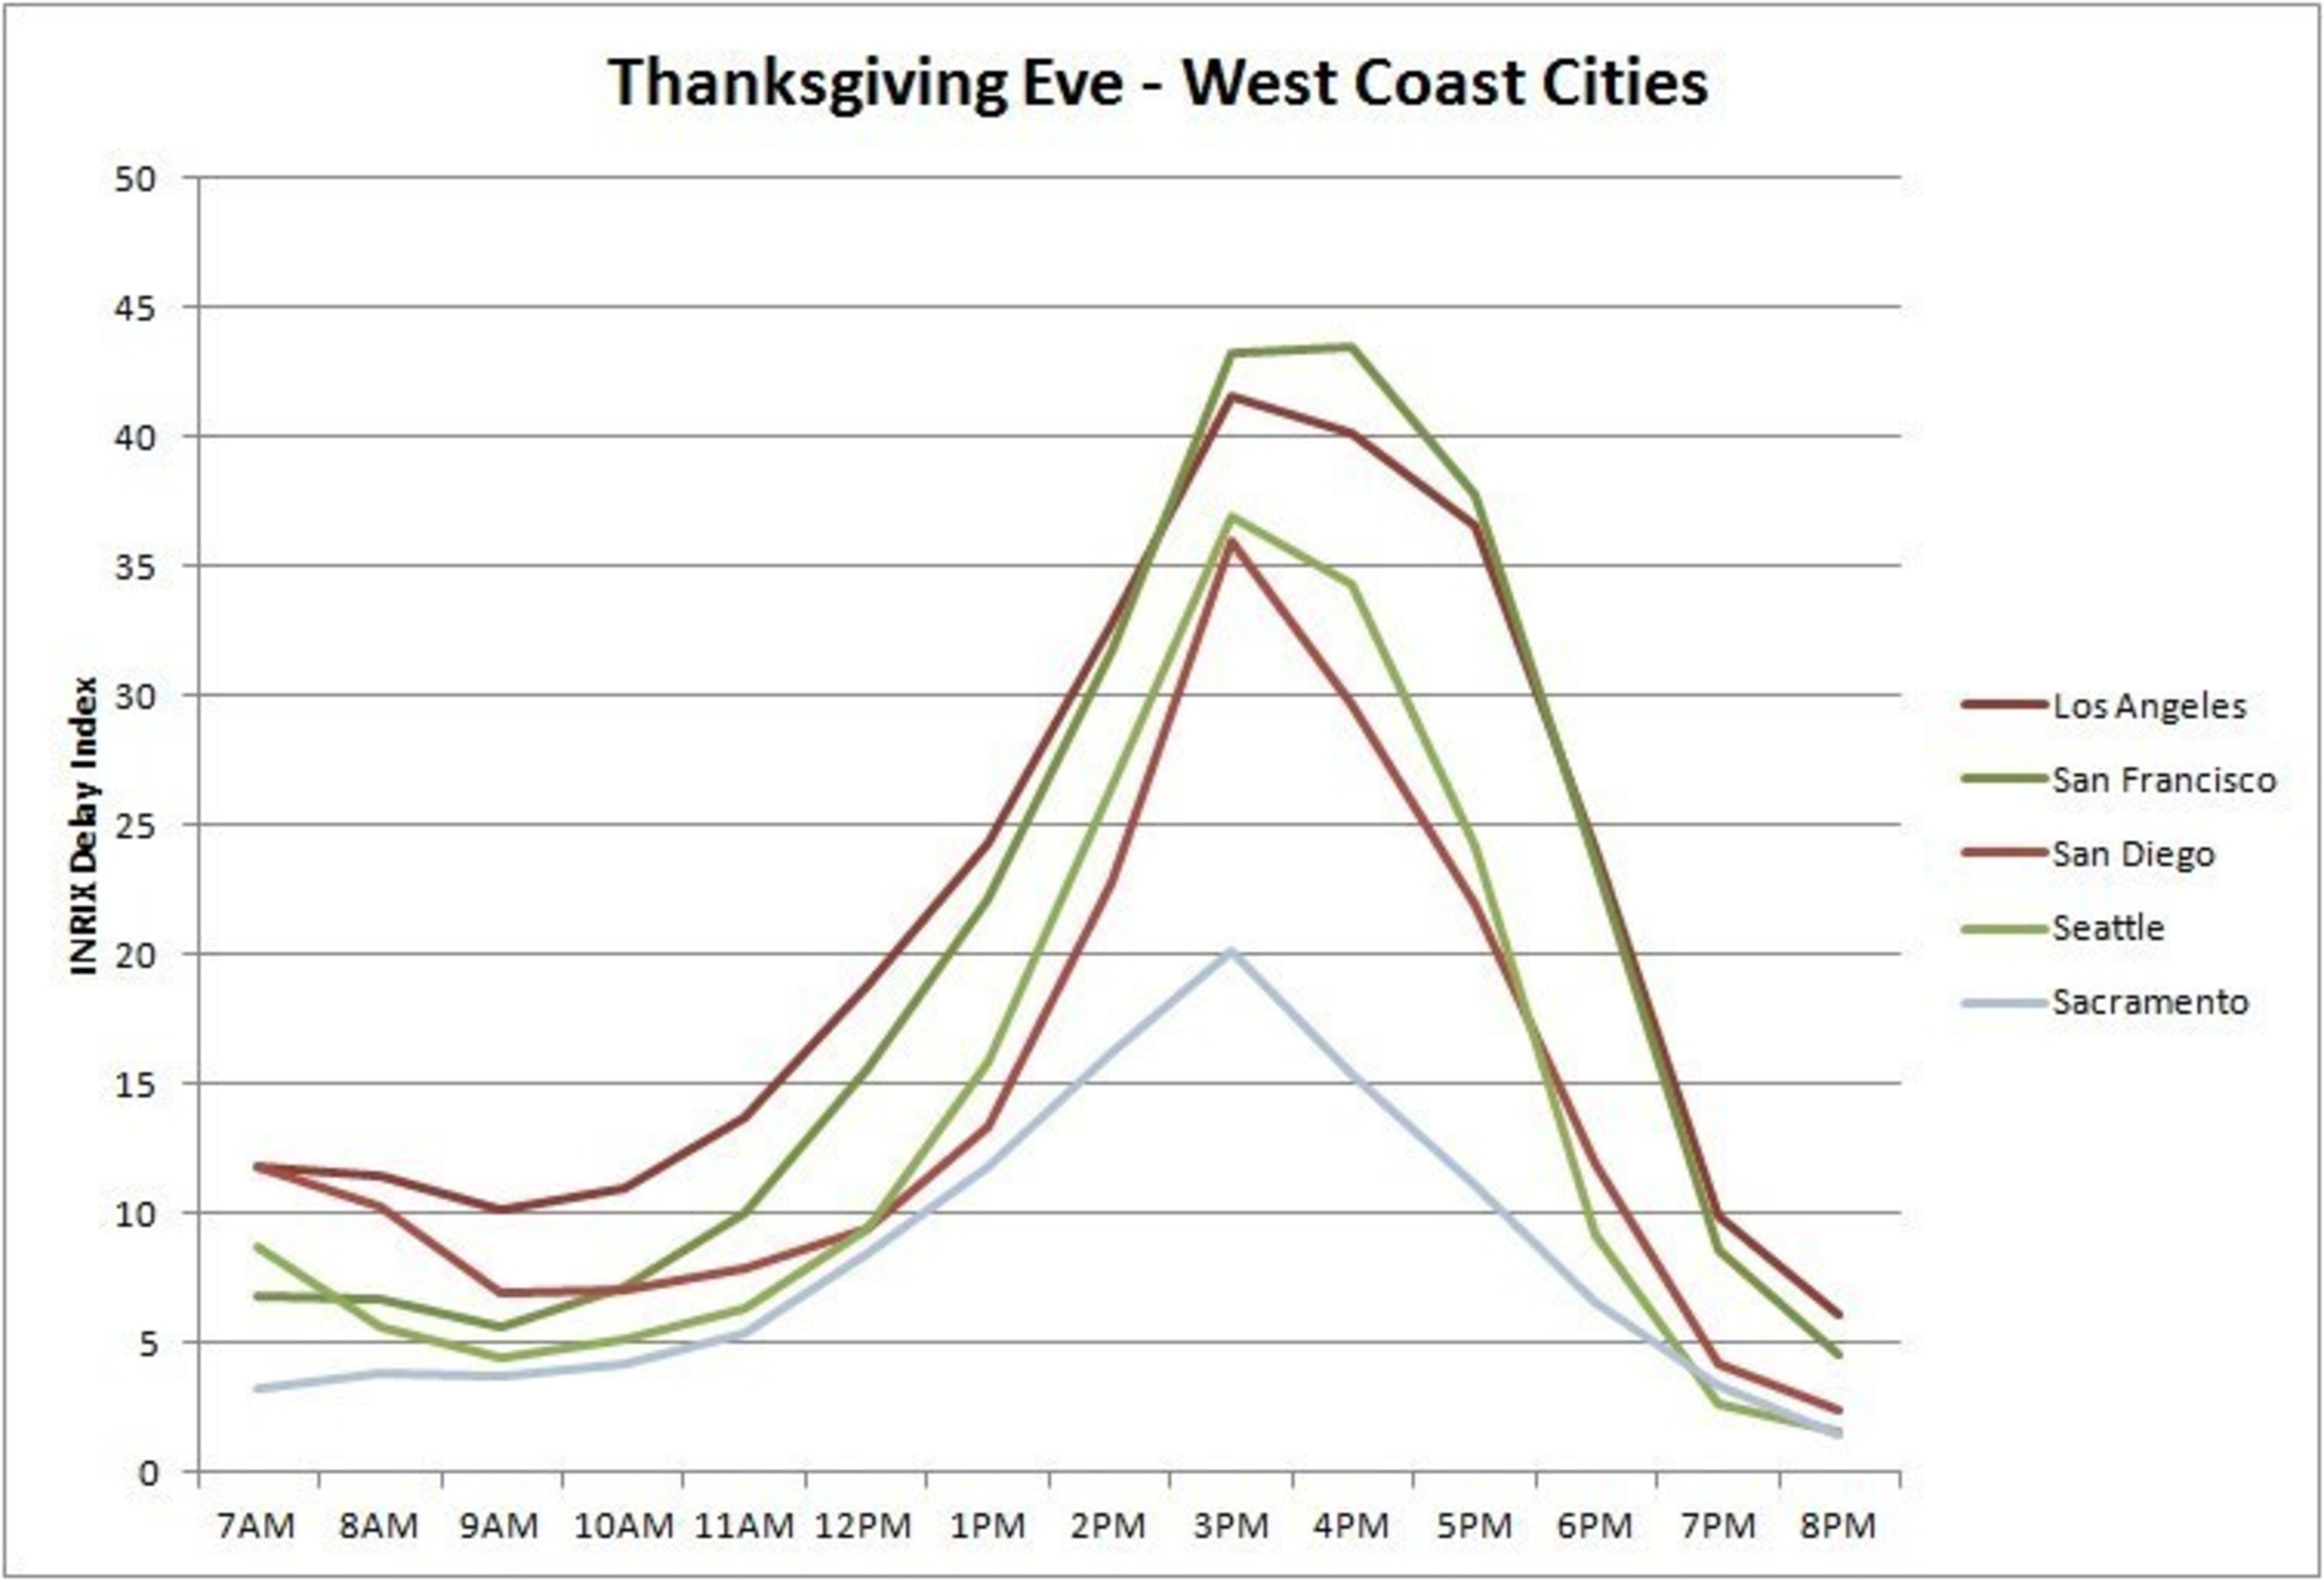 Thanksgiving Eve - West Coast Cities